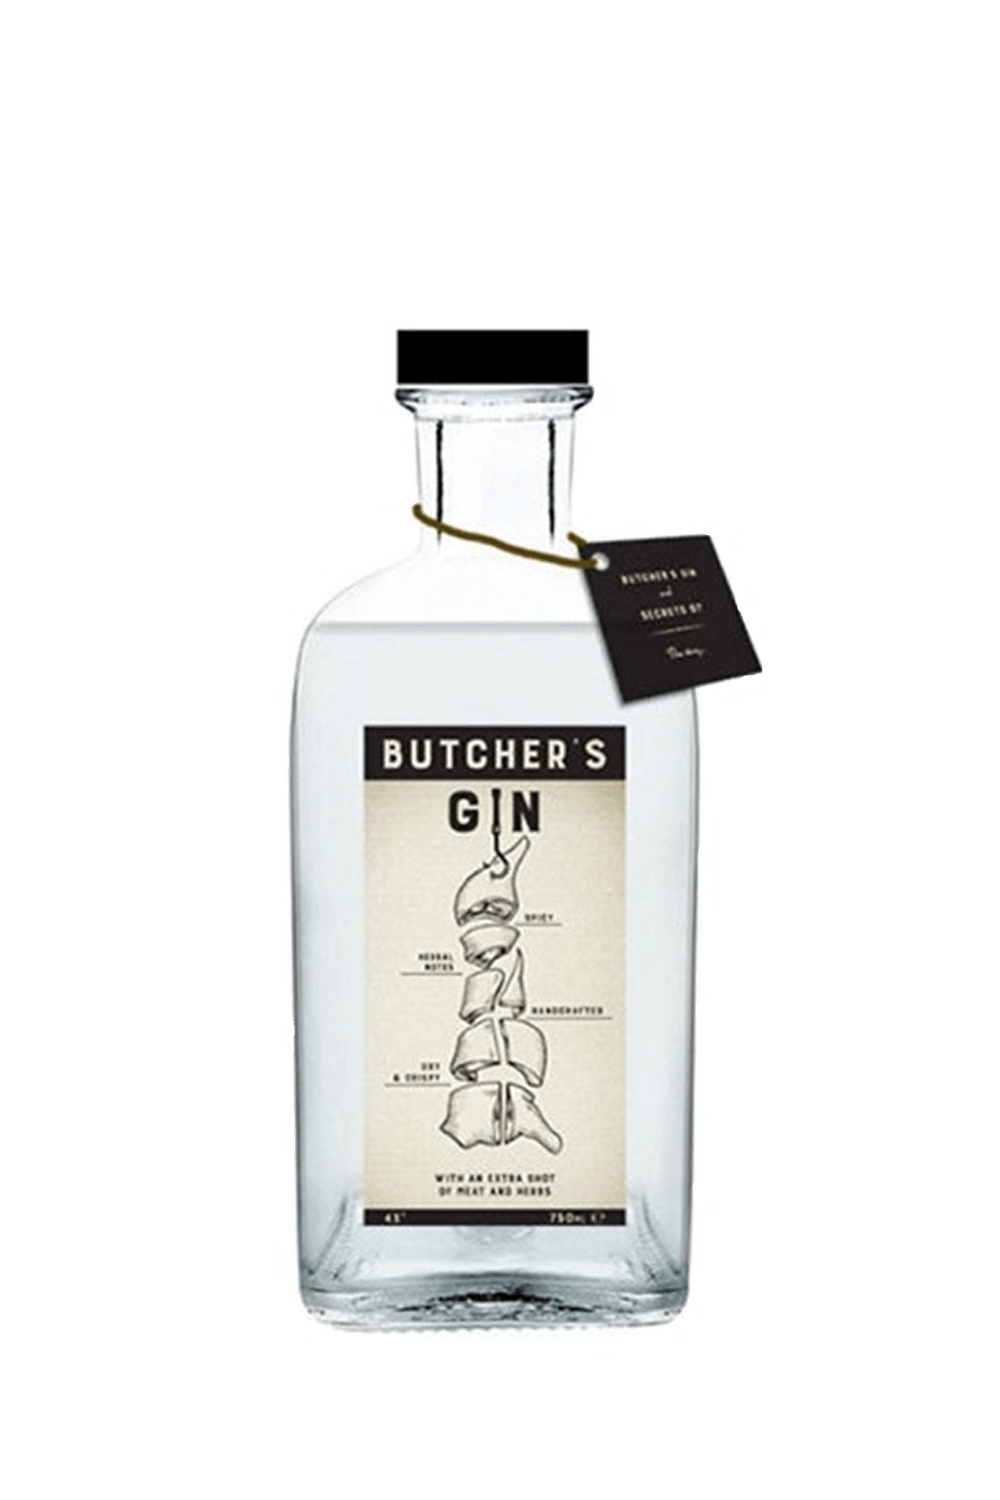 BUTCHER'S GIN - SPIRITS BY DESIGN